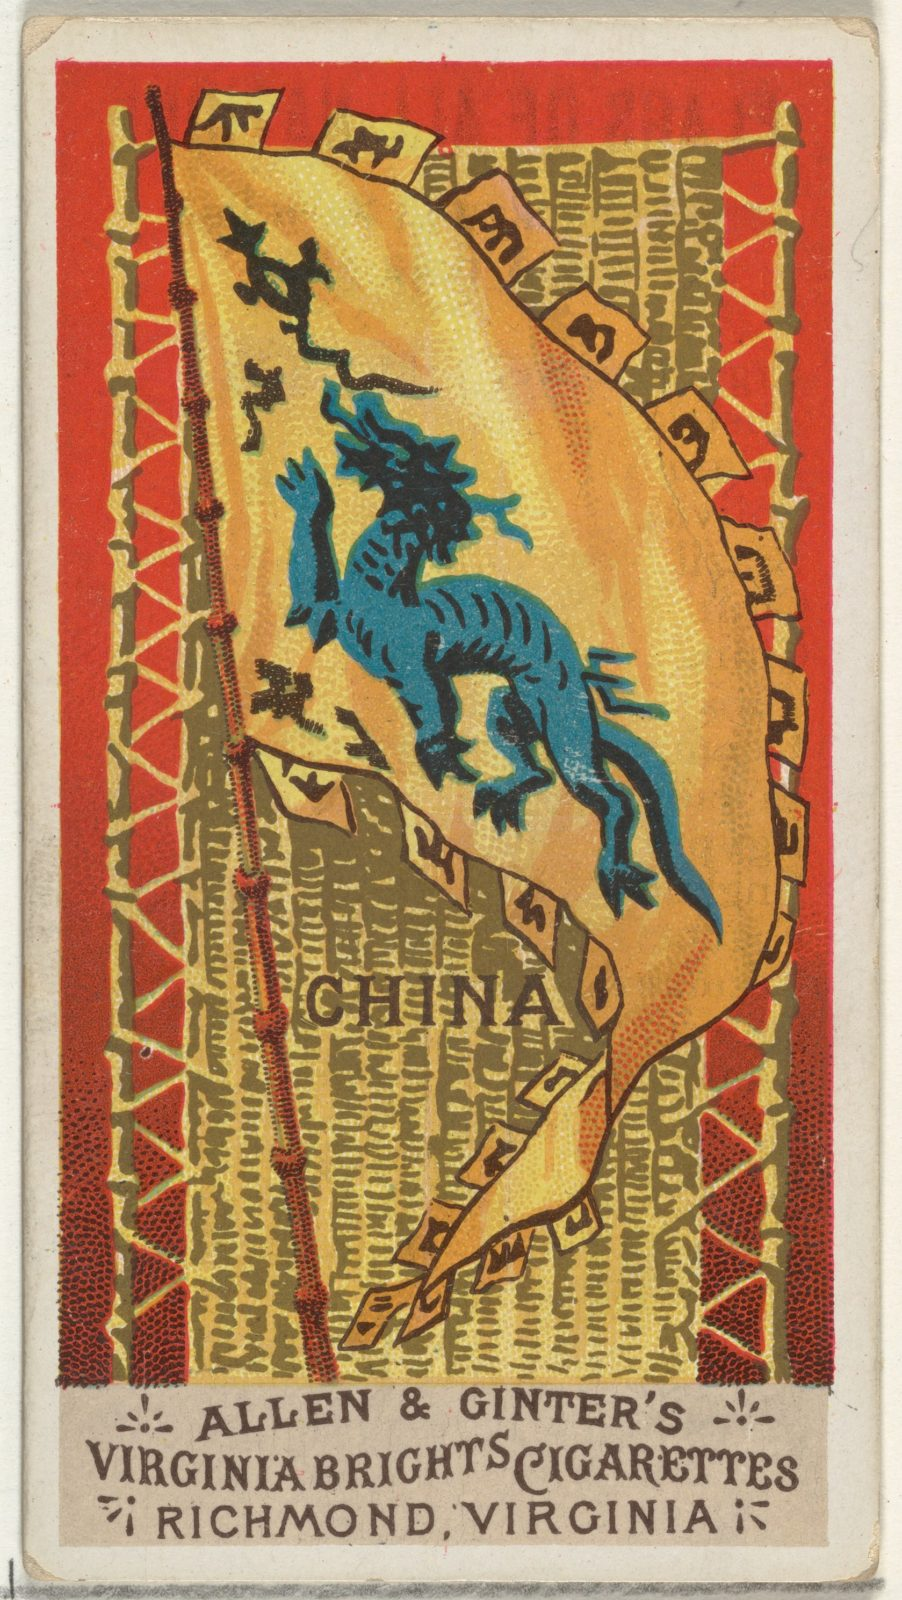 China, from Flags of All Nations, Series 1 (N9) for Allen & Ginter Cigarettes Brands